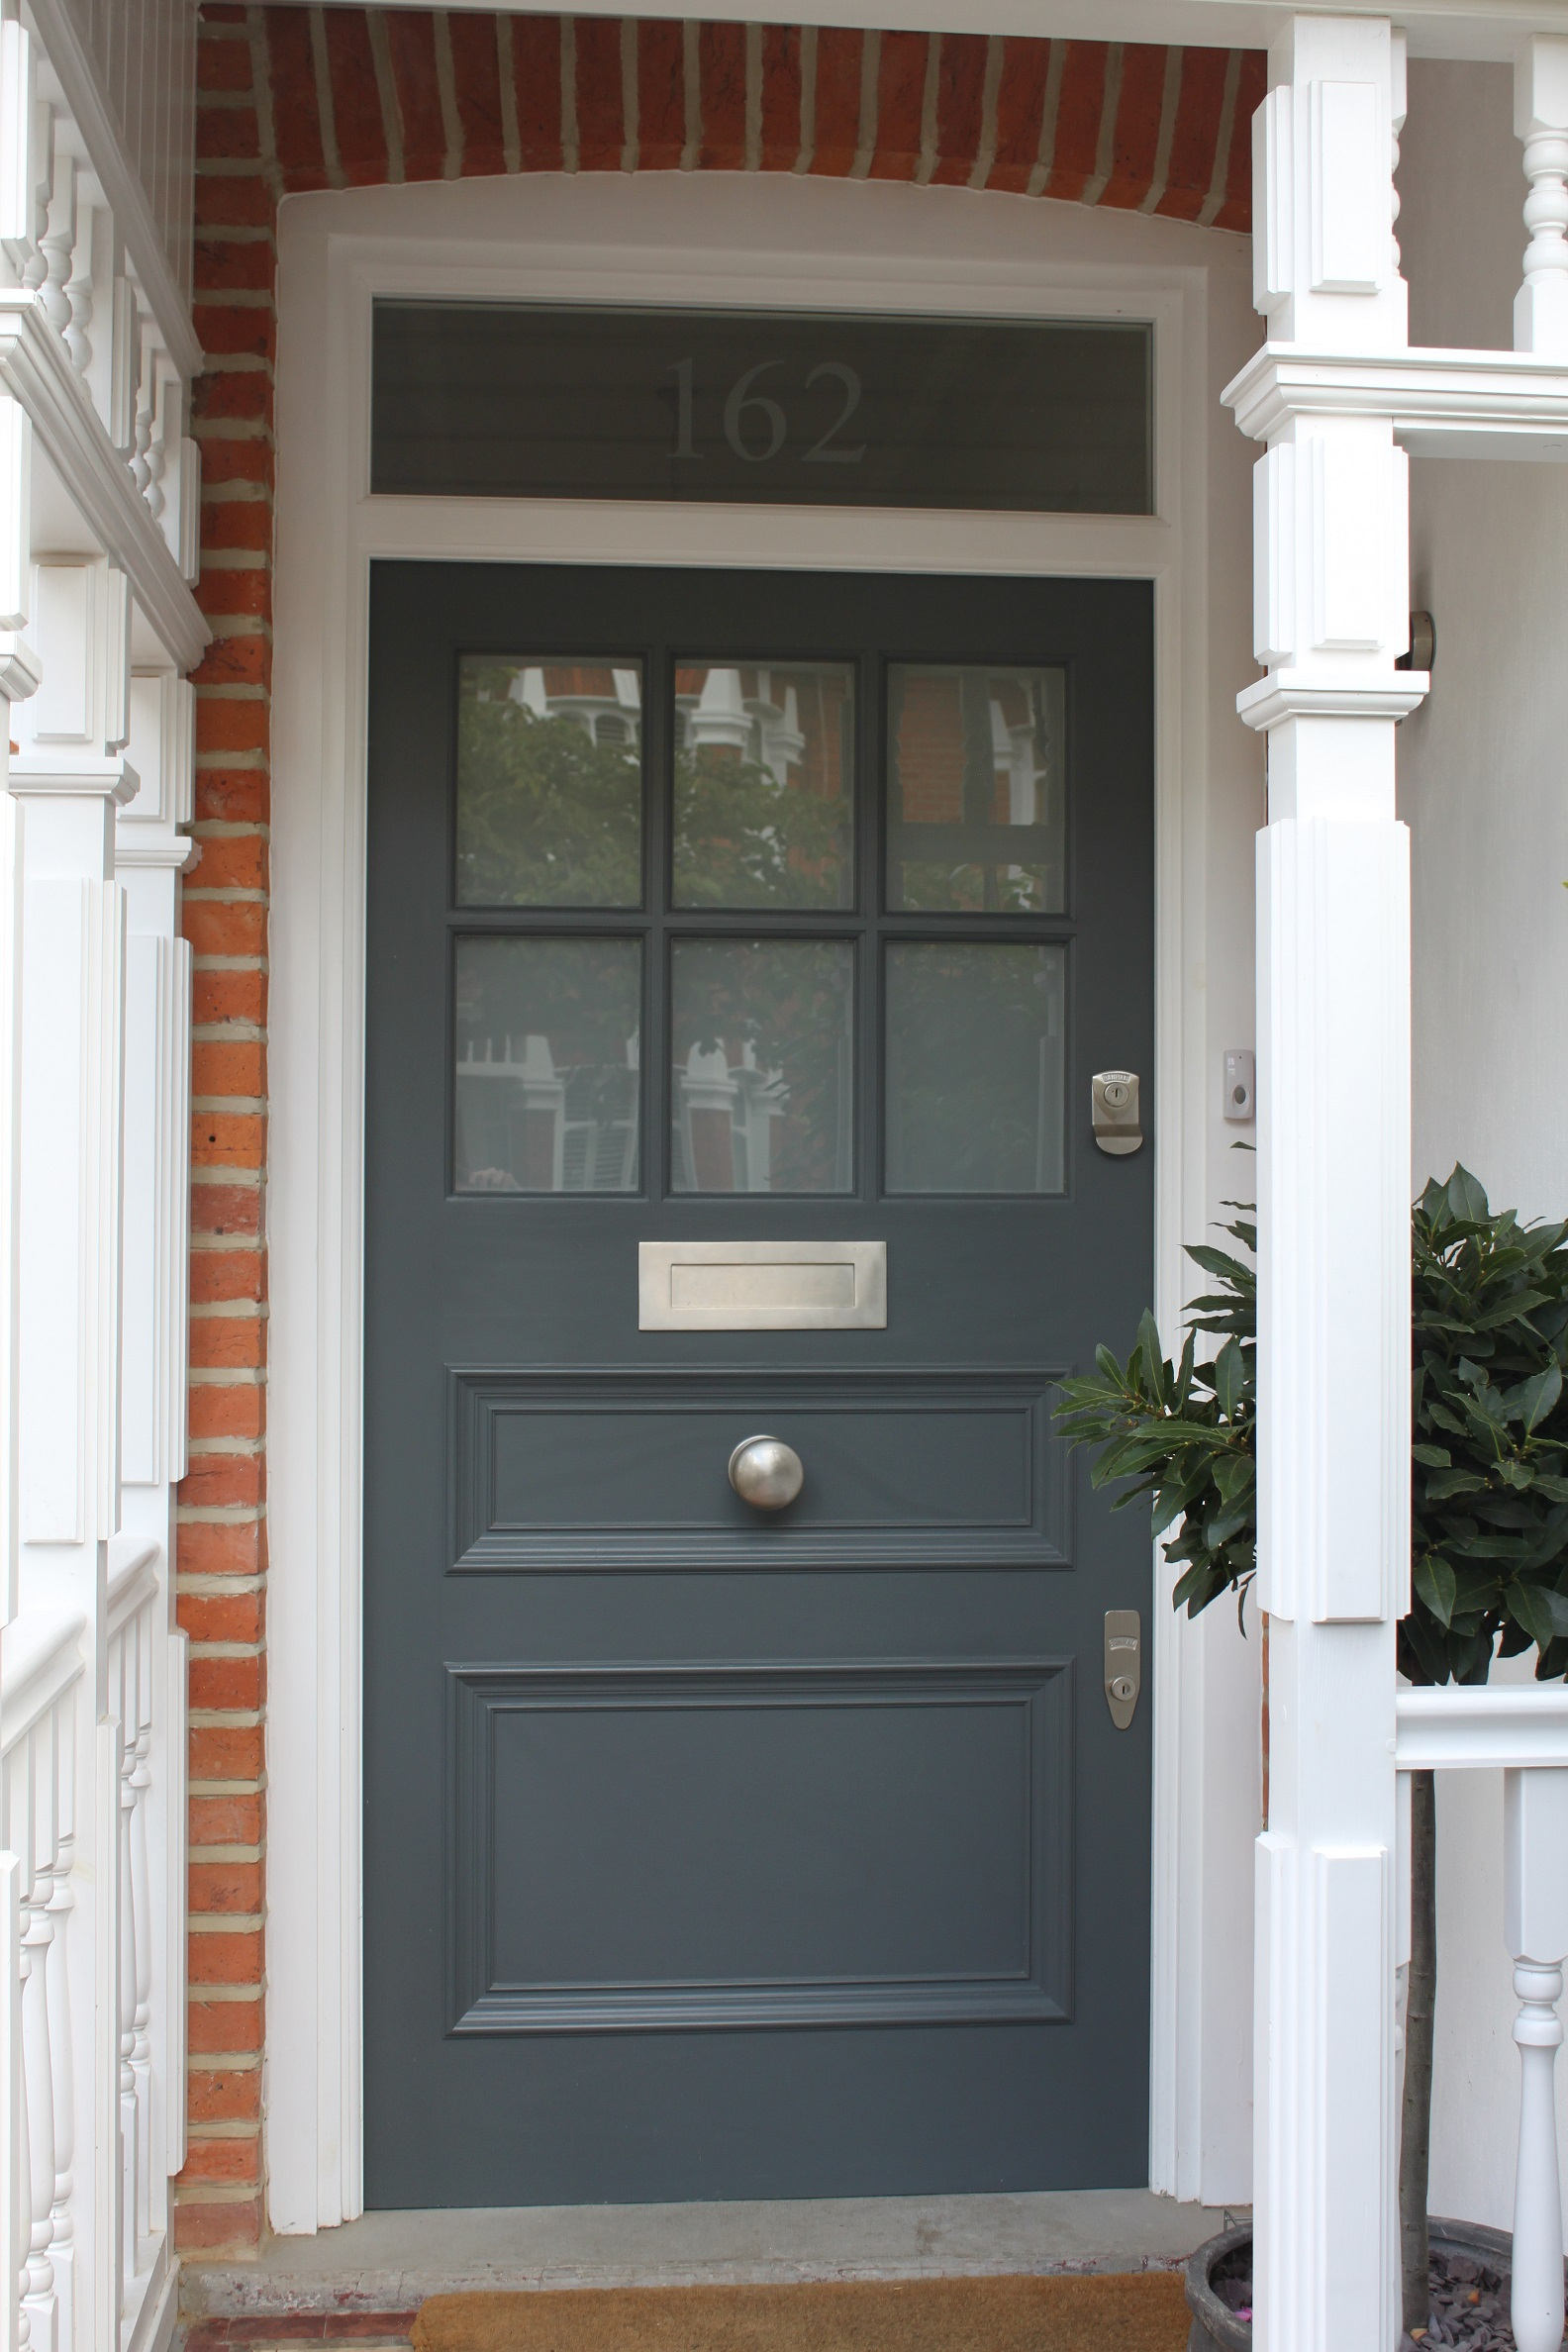 Edwardian front doors voysey jones for Exterior doors with glass